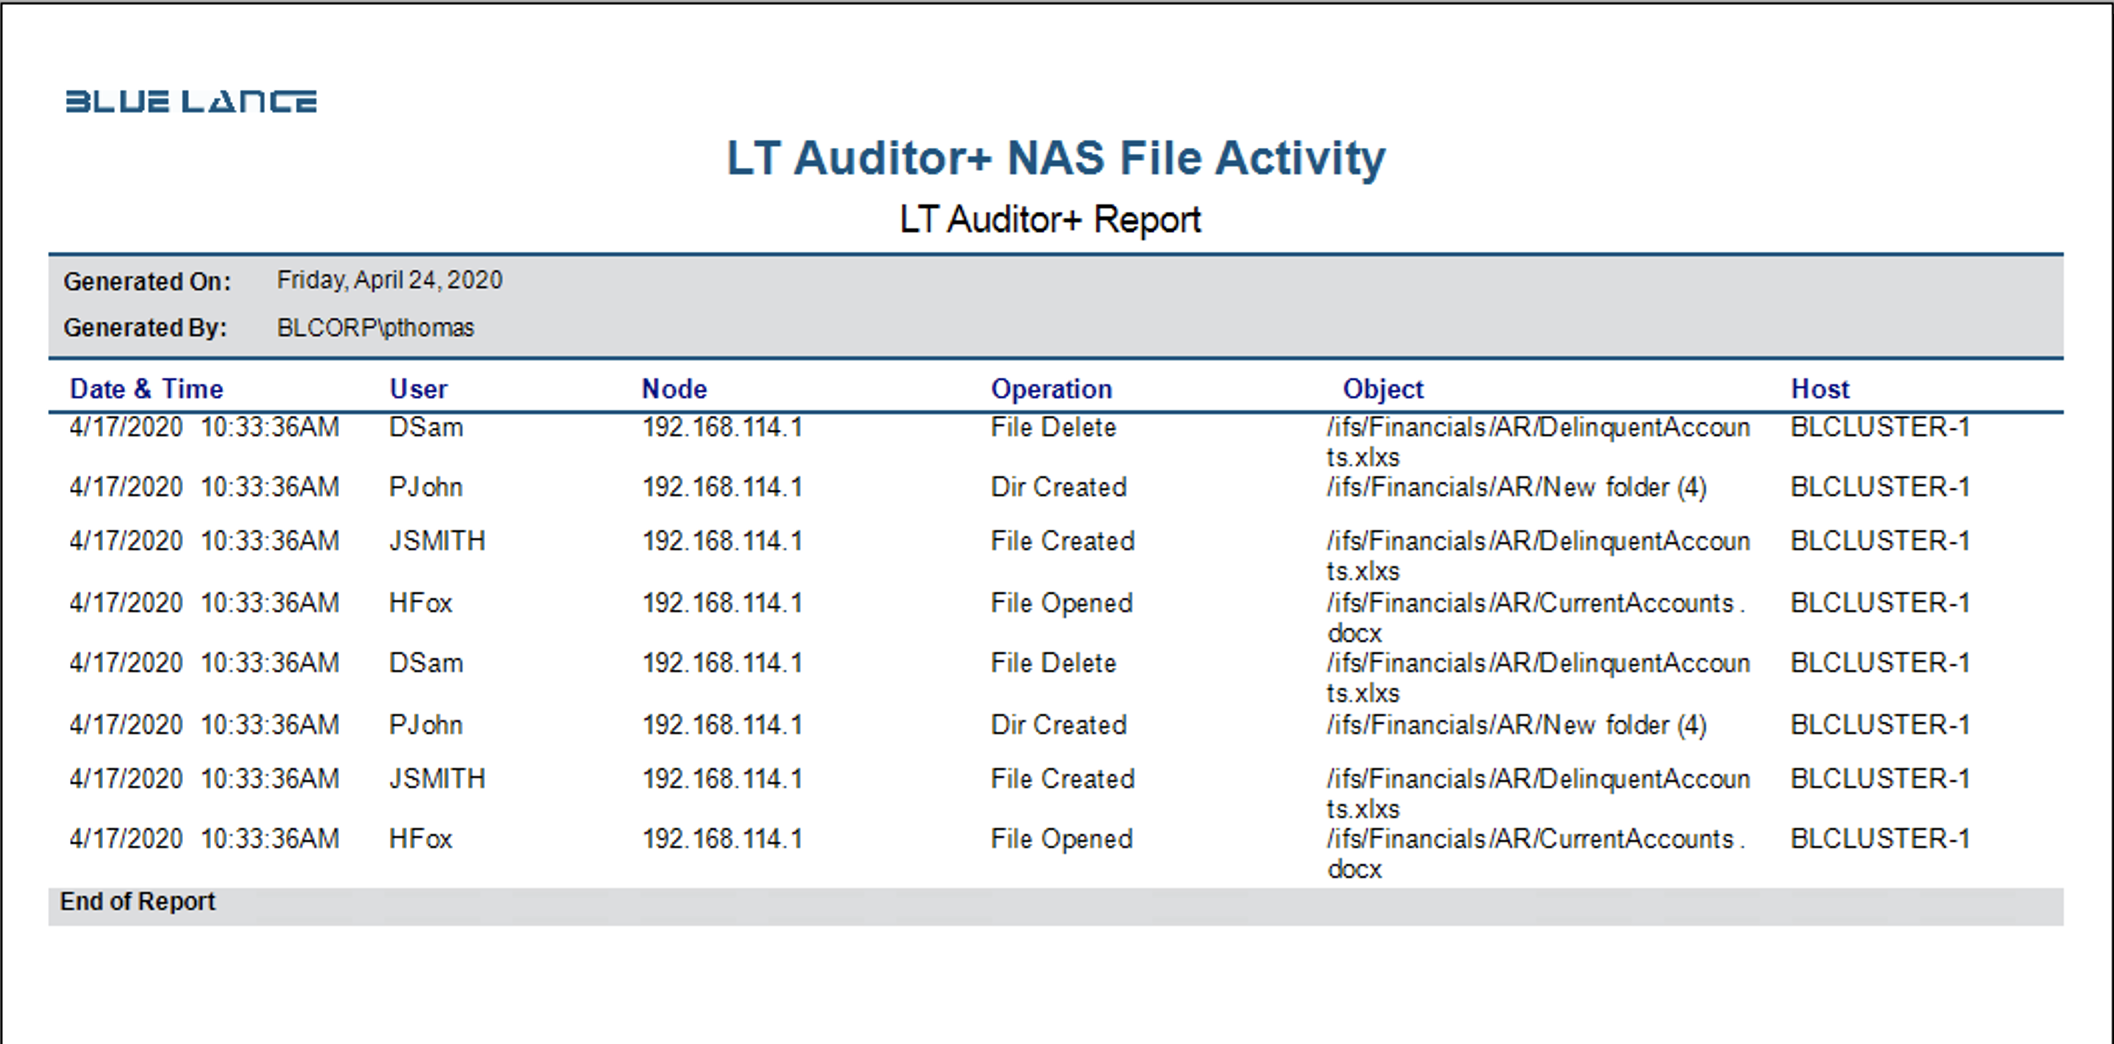 Transformed NAS LT Auditor+ Report